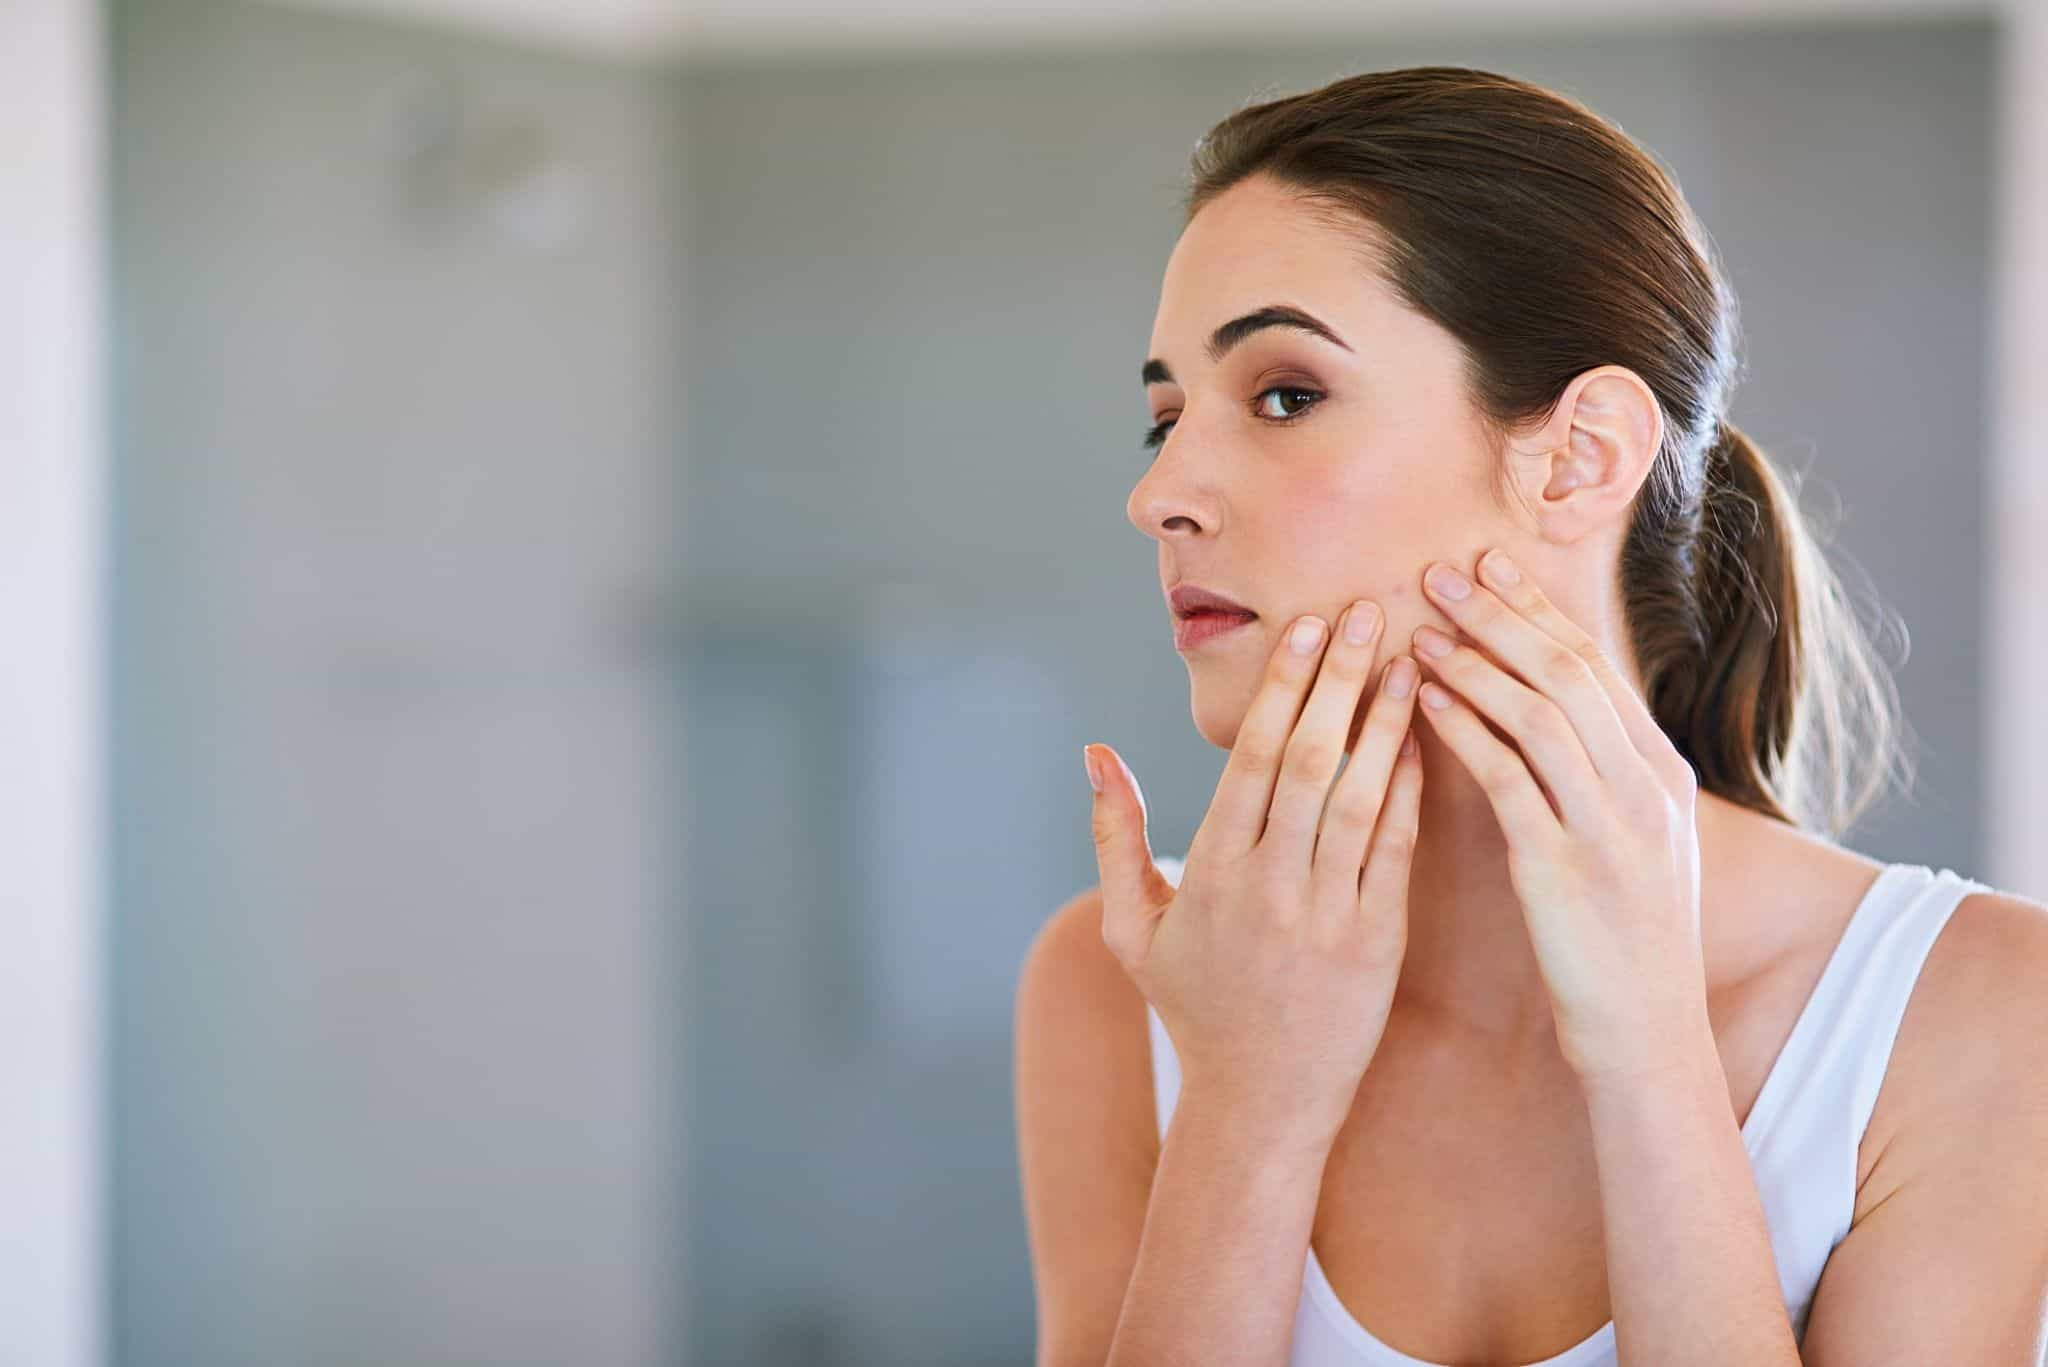 how to get rid of redness after popping a pimple